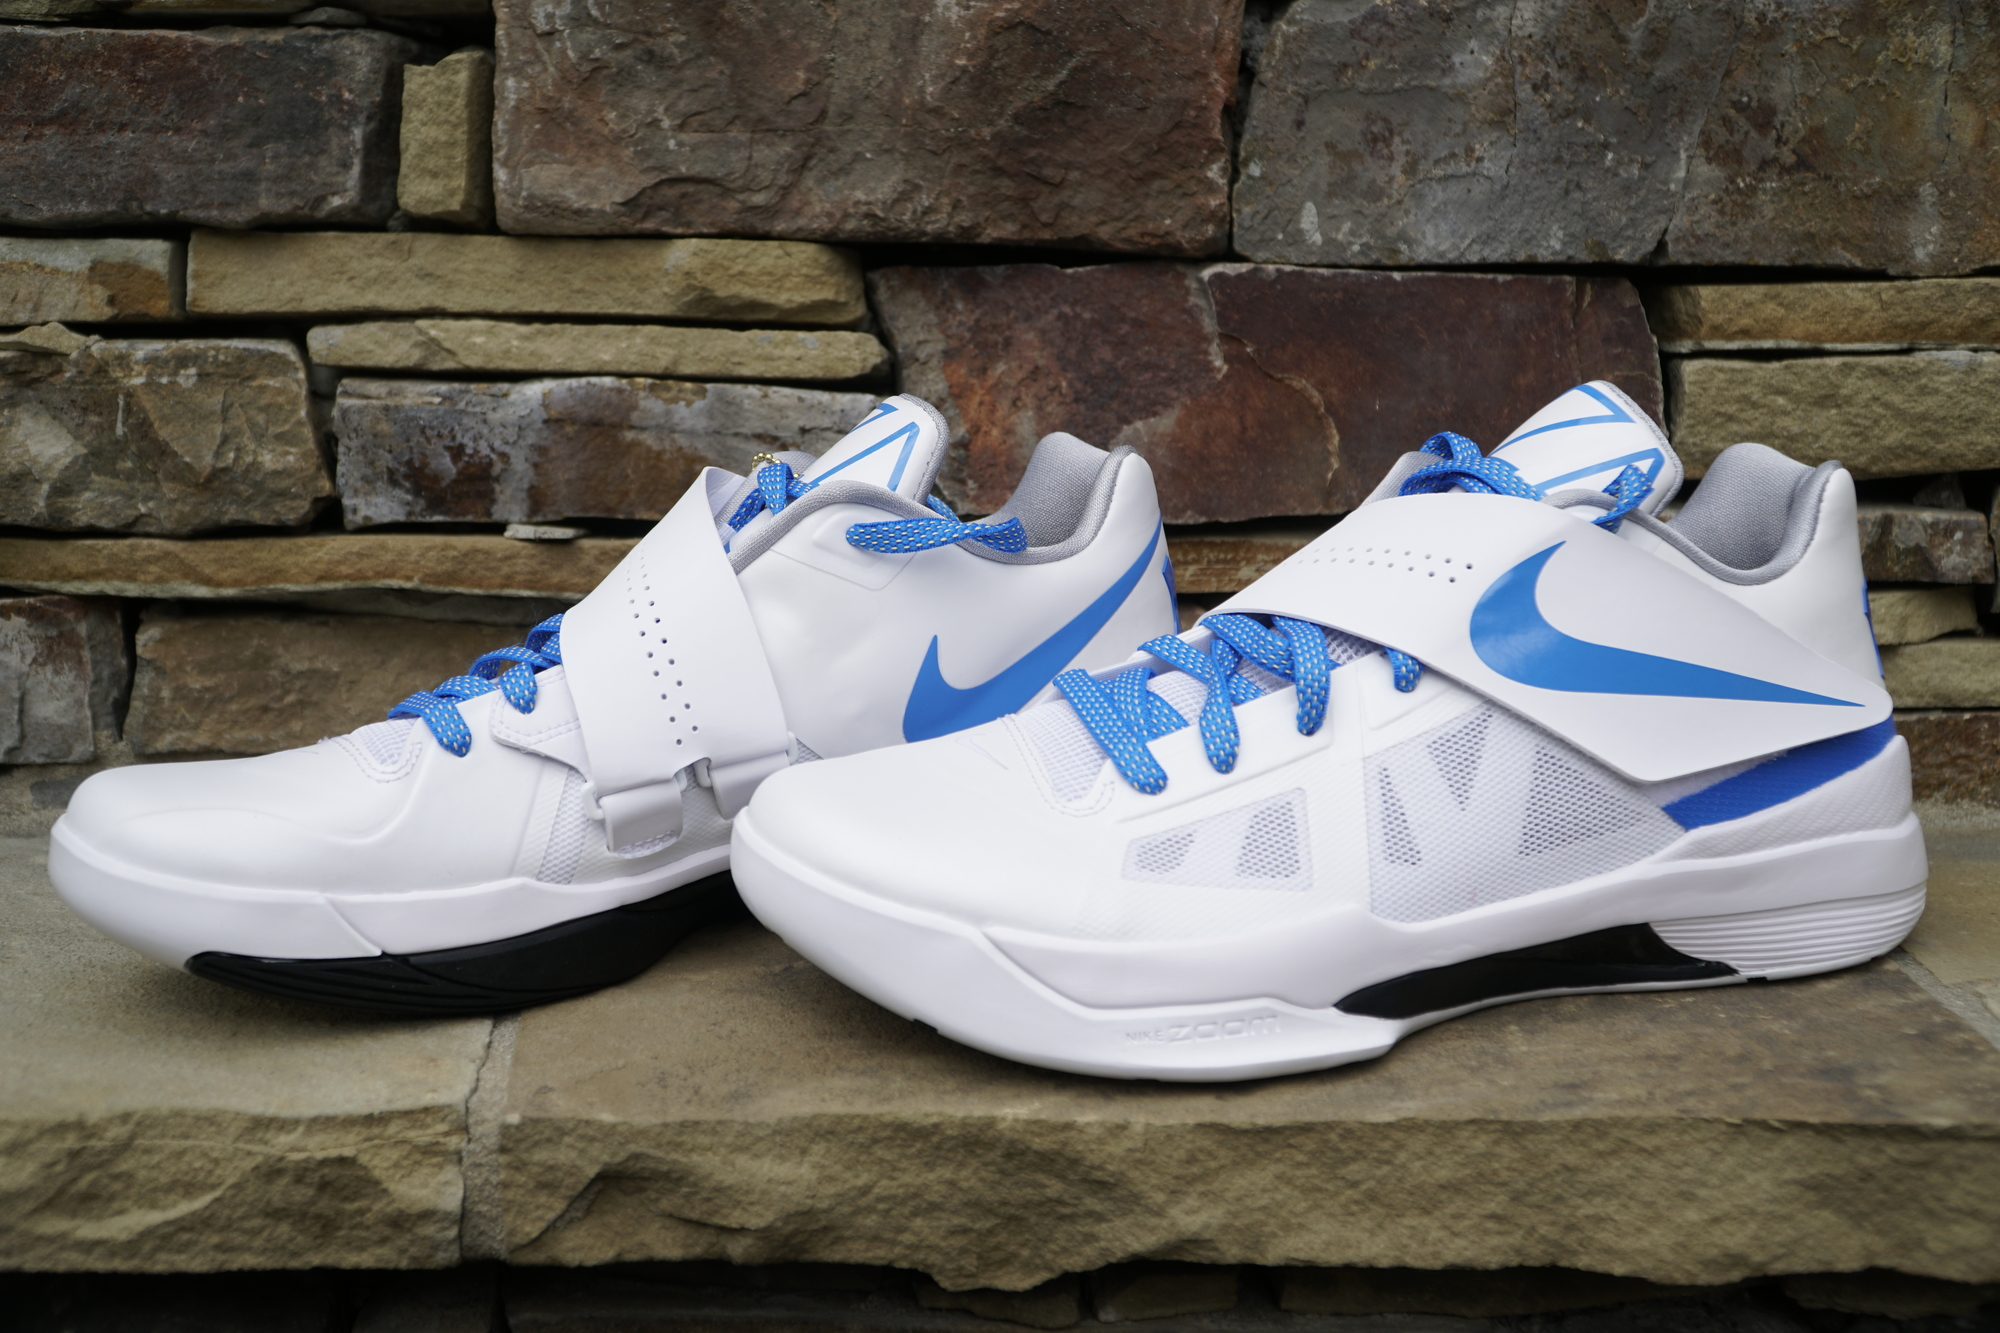 7df2a00de006 Nike KD 4 battle tested kevin durant 4 - WearTesters